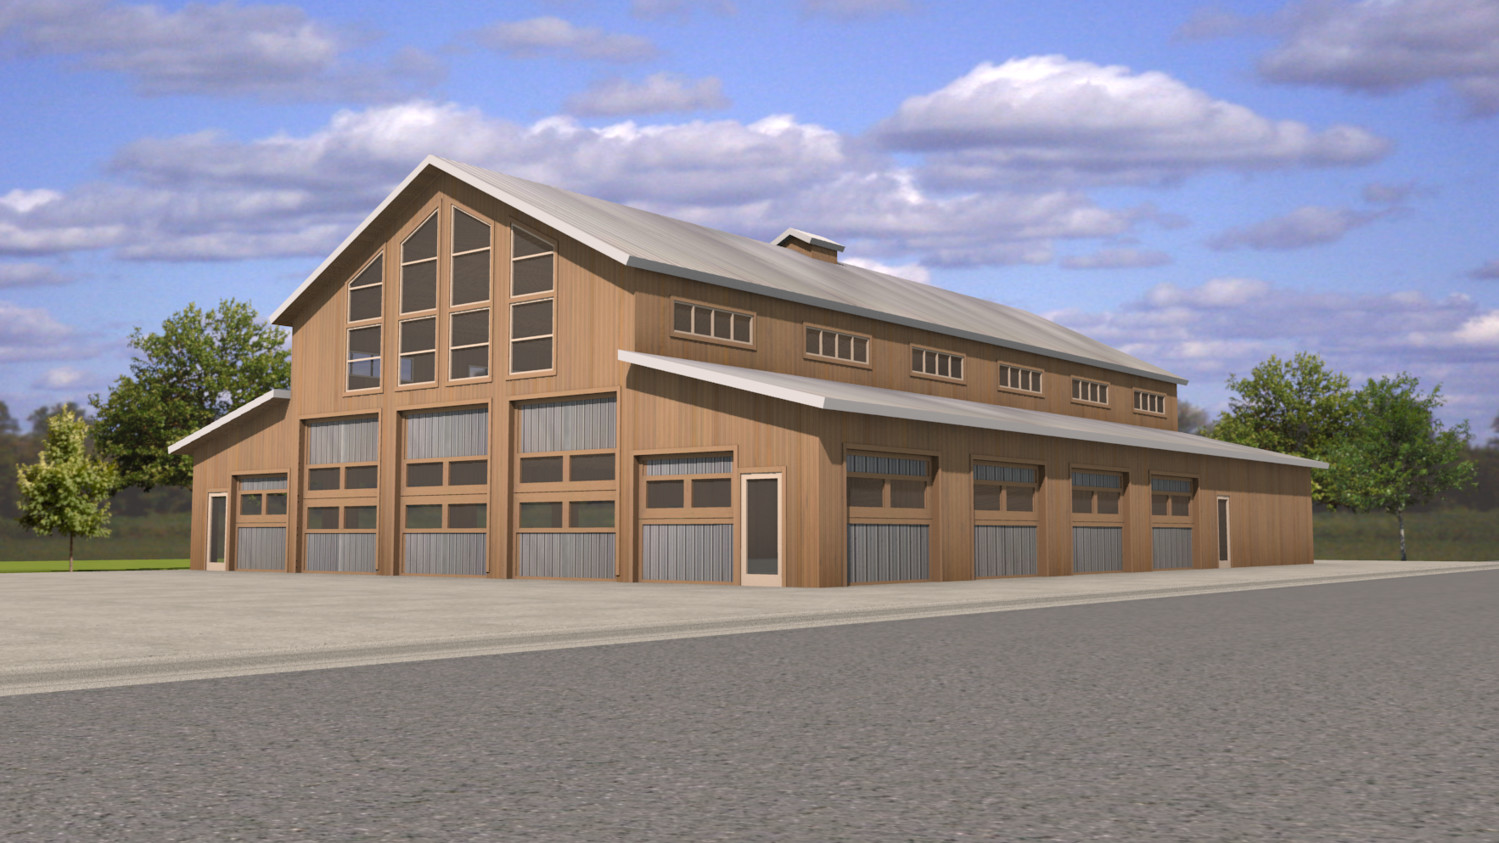 The finished event venue, featuring wood from Amish company Ozark Timber Frame, will resemble a barn.